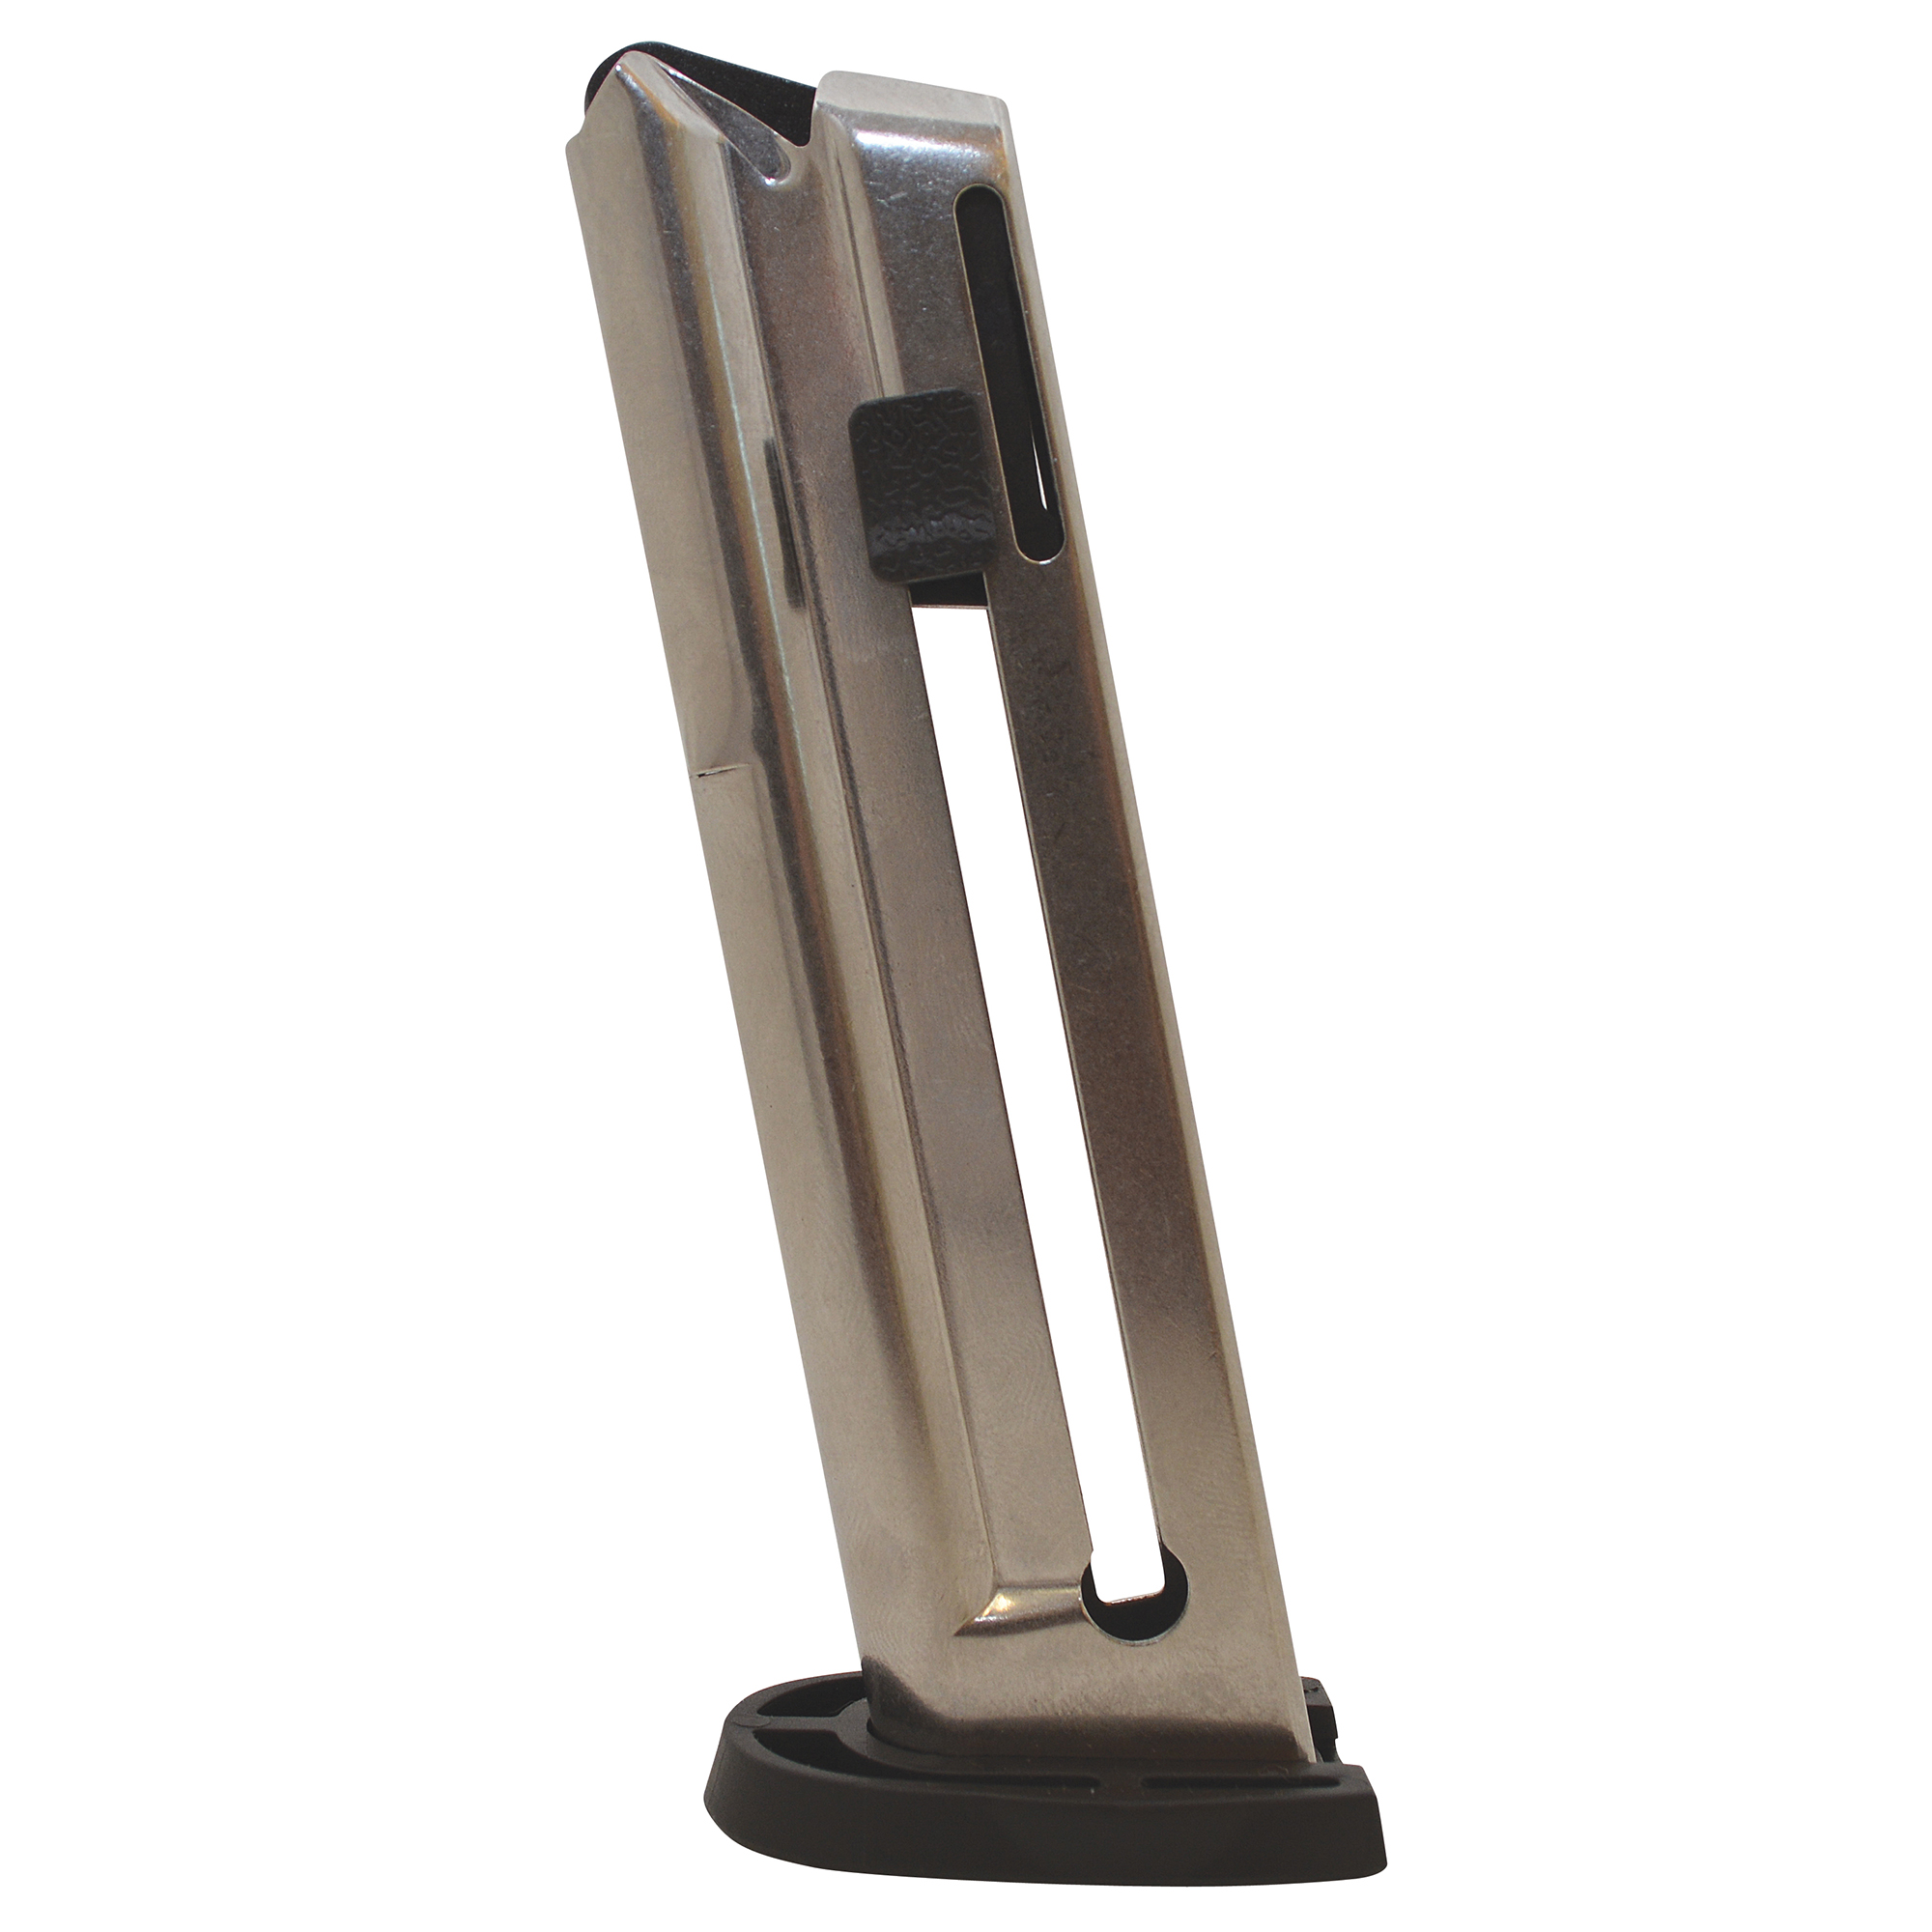 Smith & Wesson M & P .22 Cal Compact 10-Round Magazine